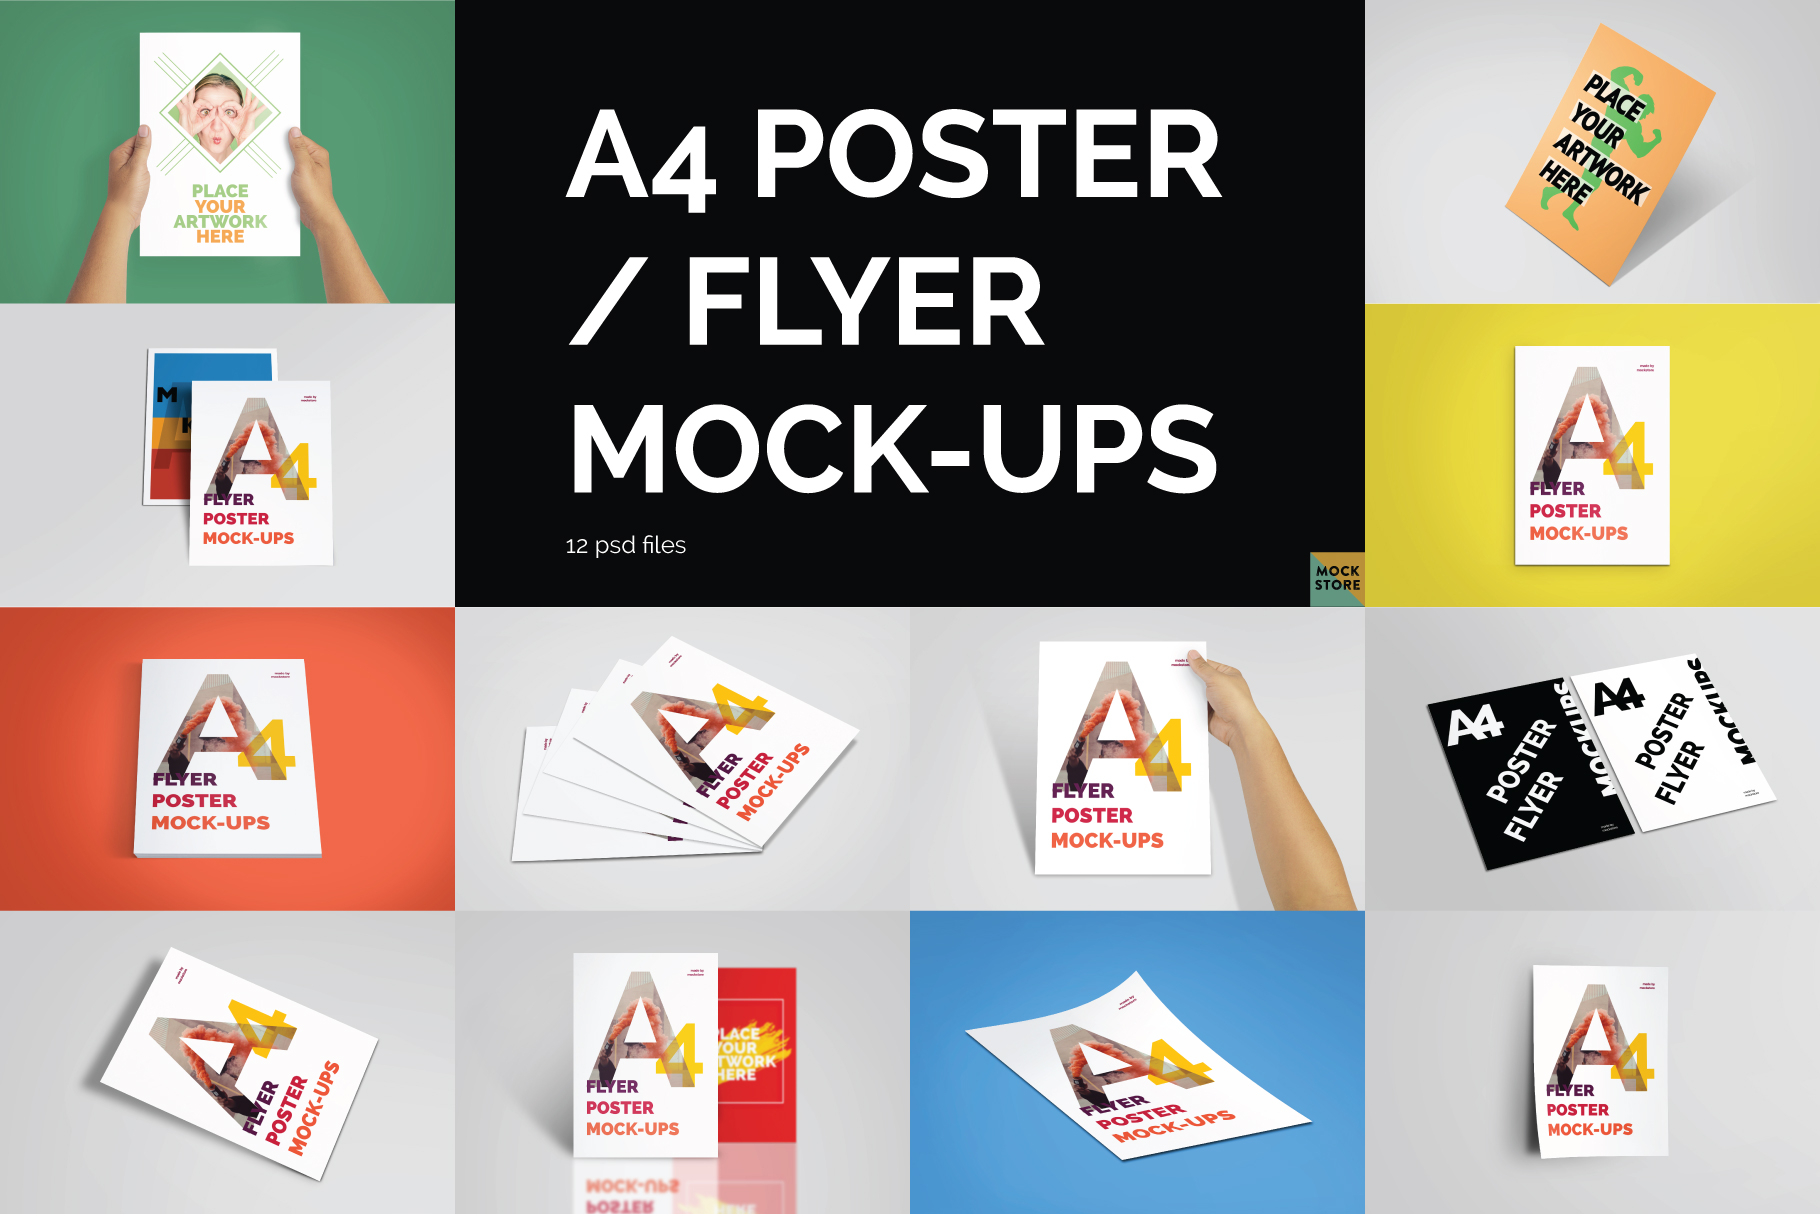 A4 Flyer / Poster Mockups example image 1